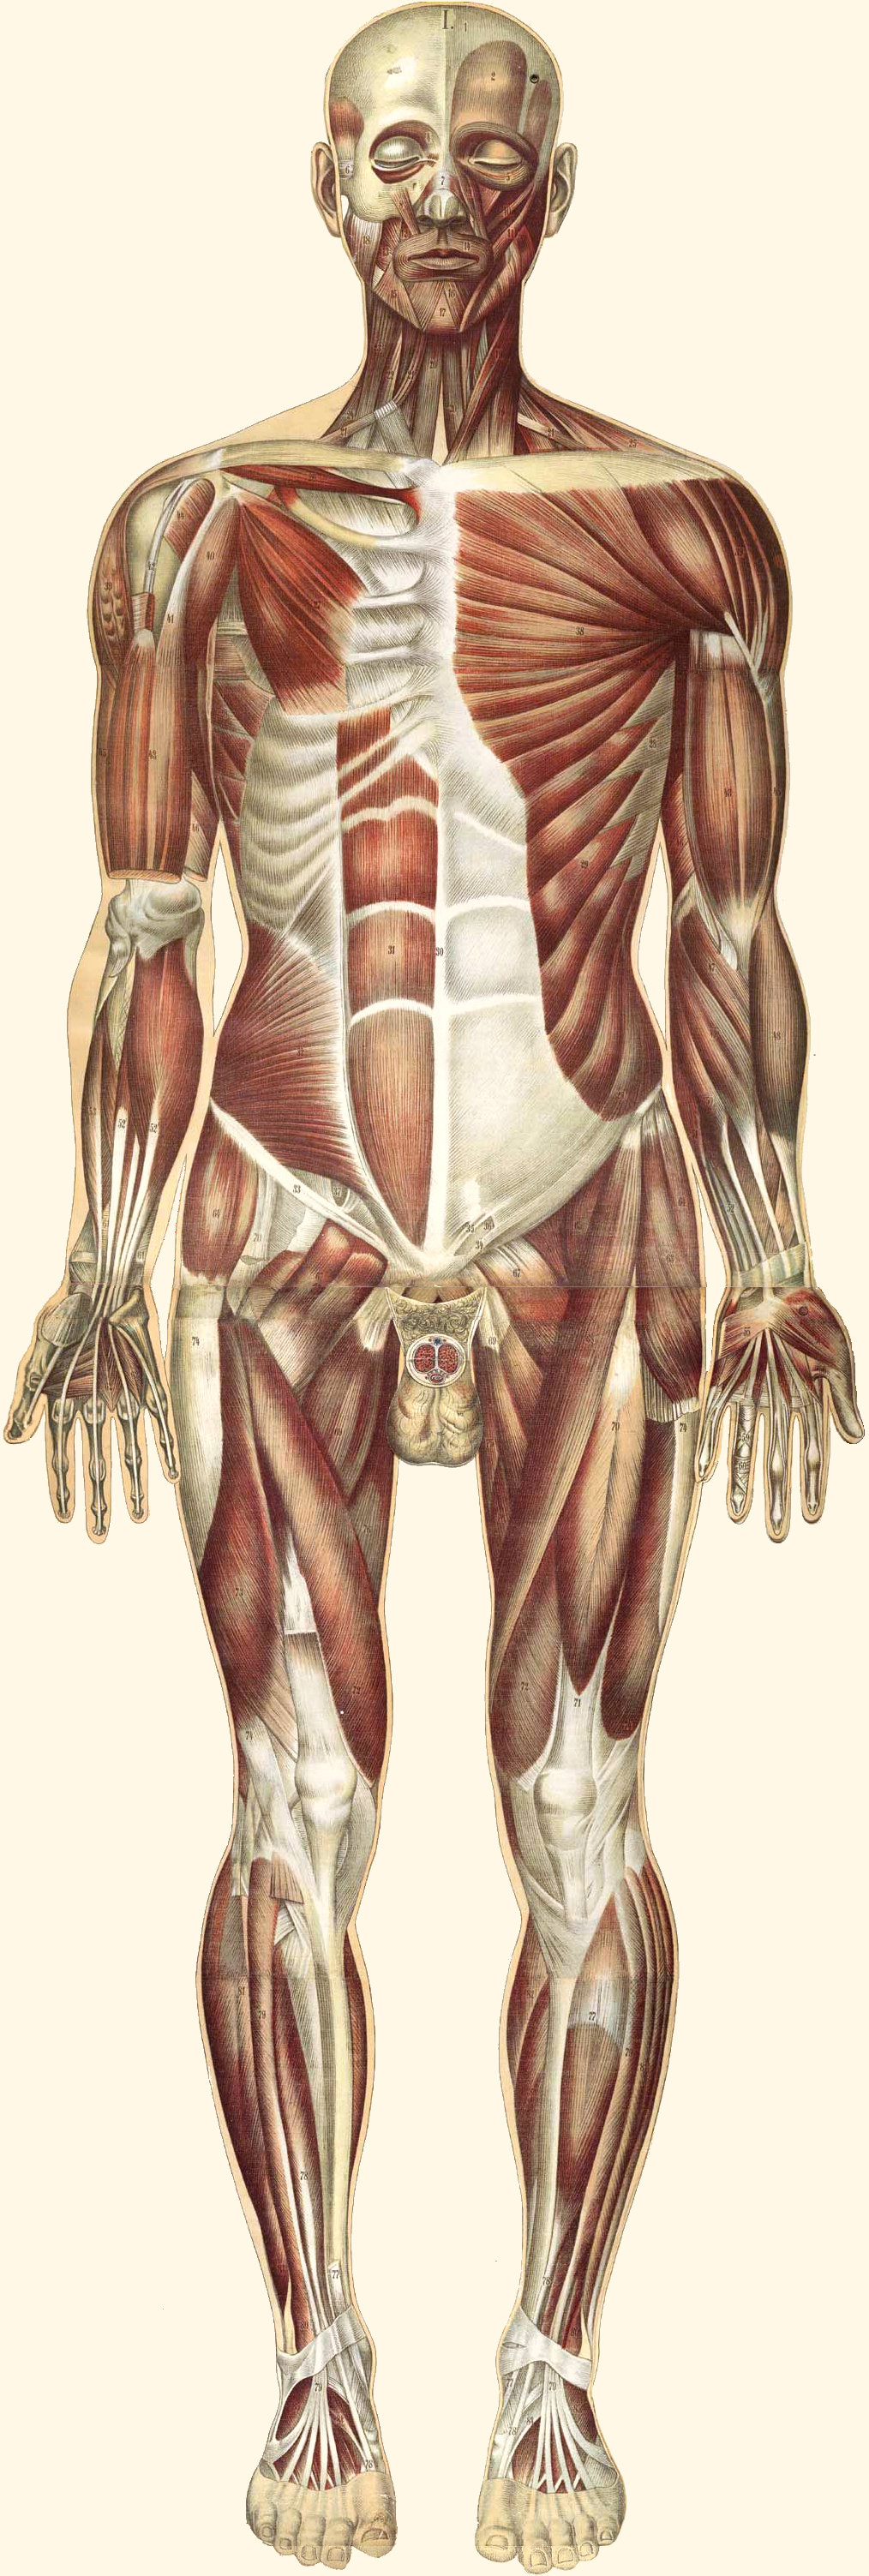 11.2.2 Muscular System